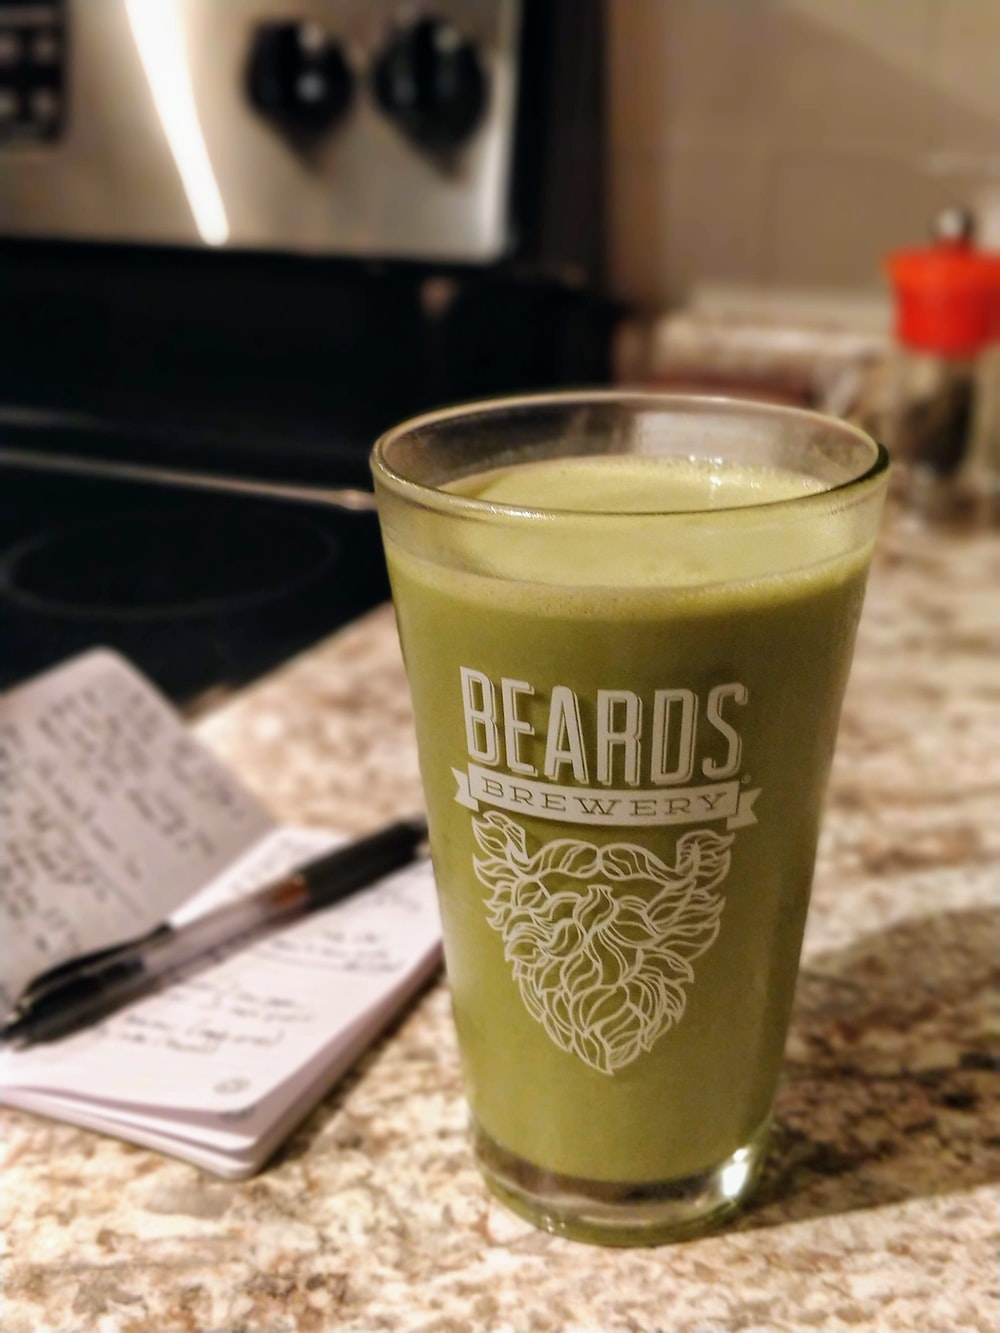 Beards Brewery-printed drinking glass with green liquid